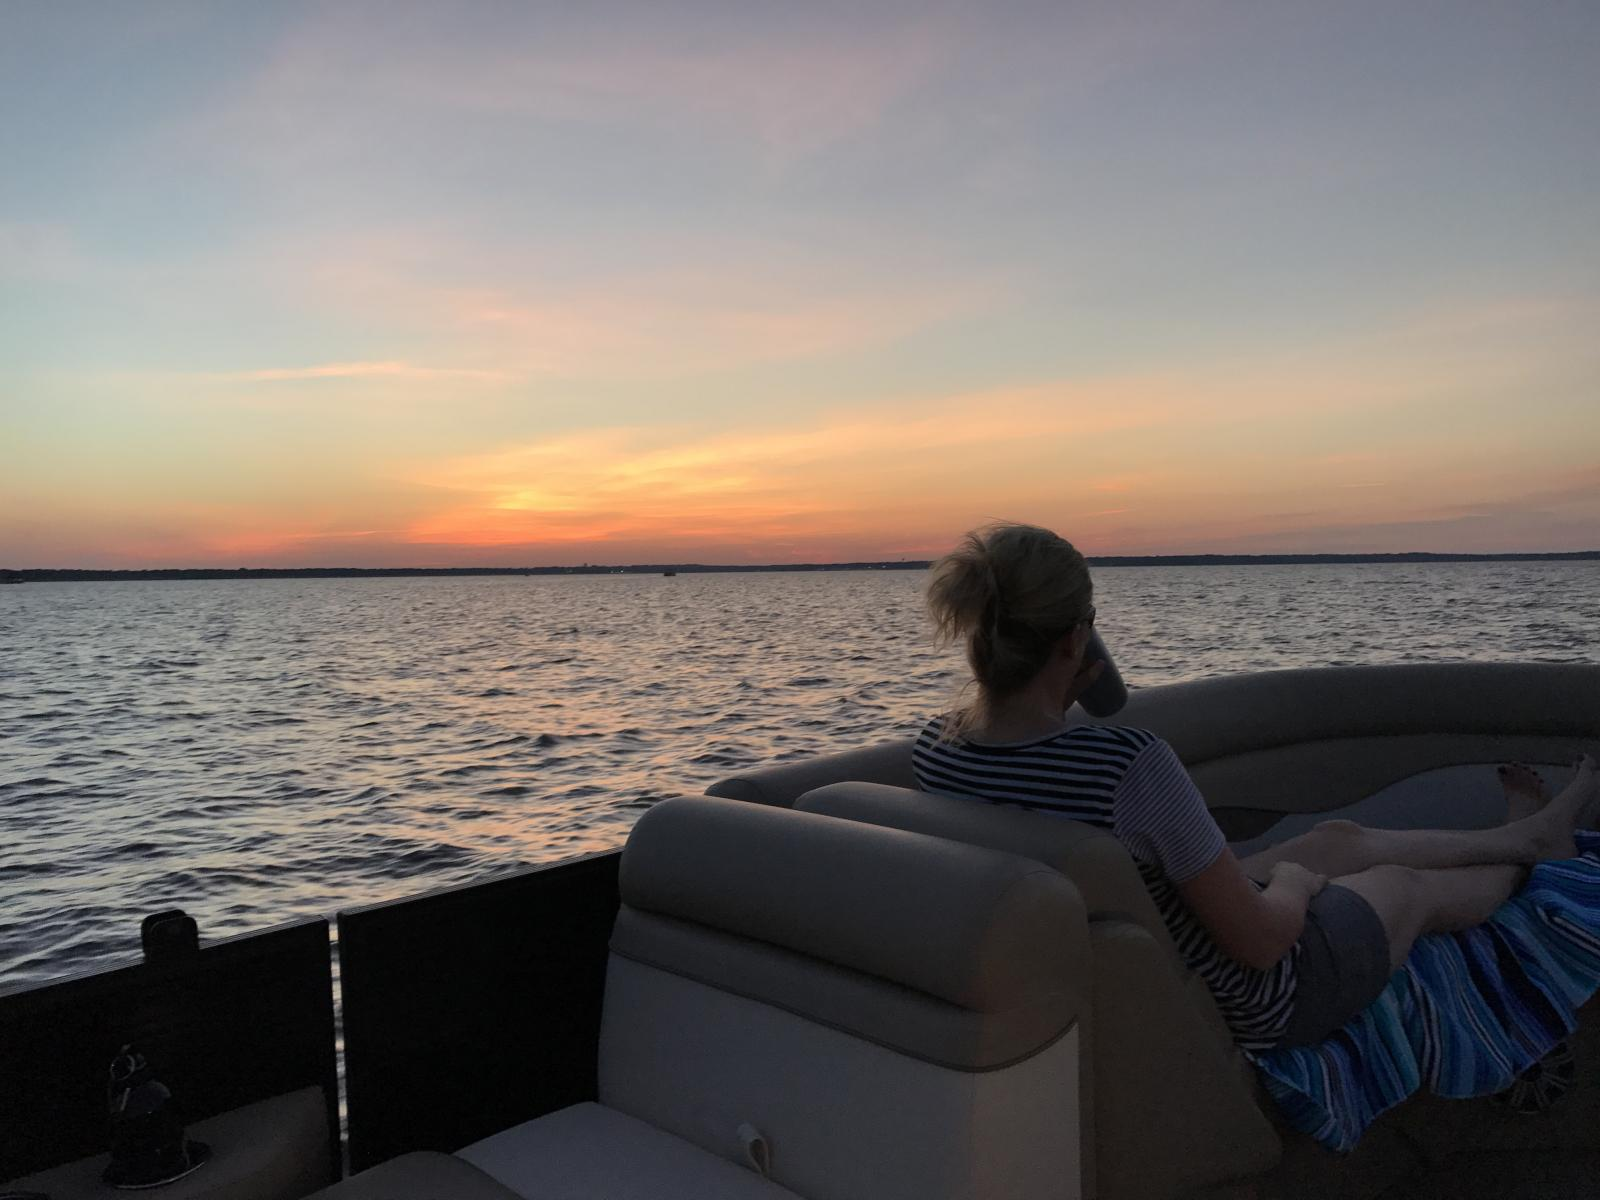 Our Thursday evening sunset cruise.